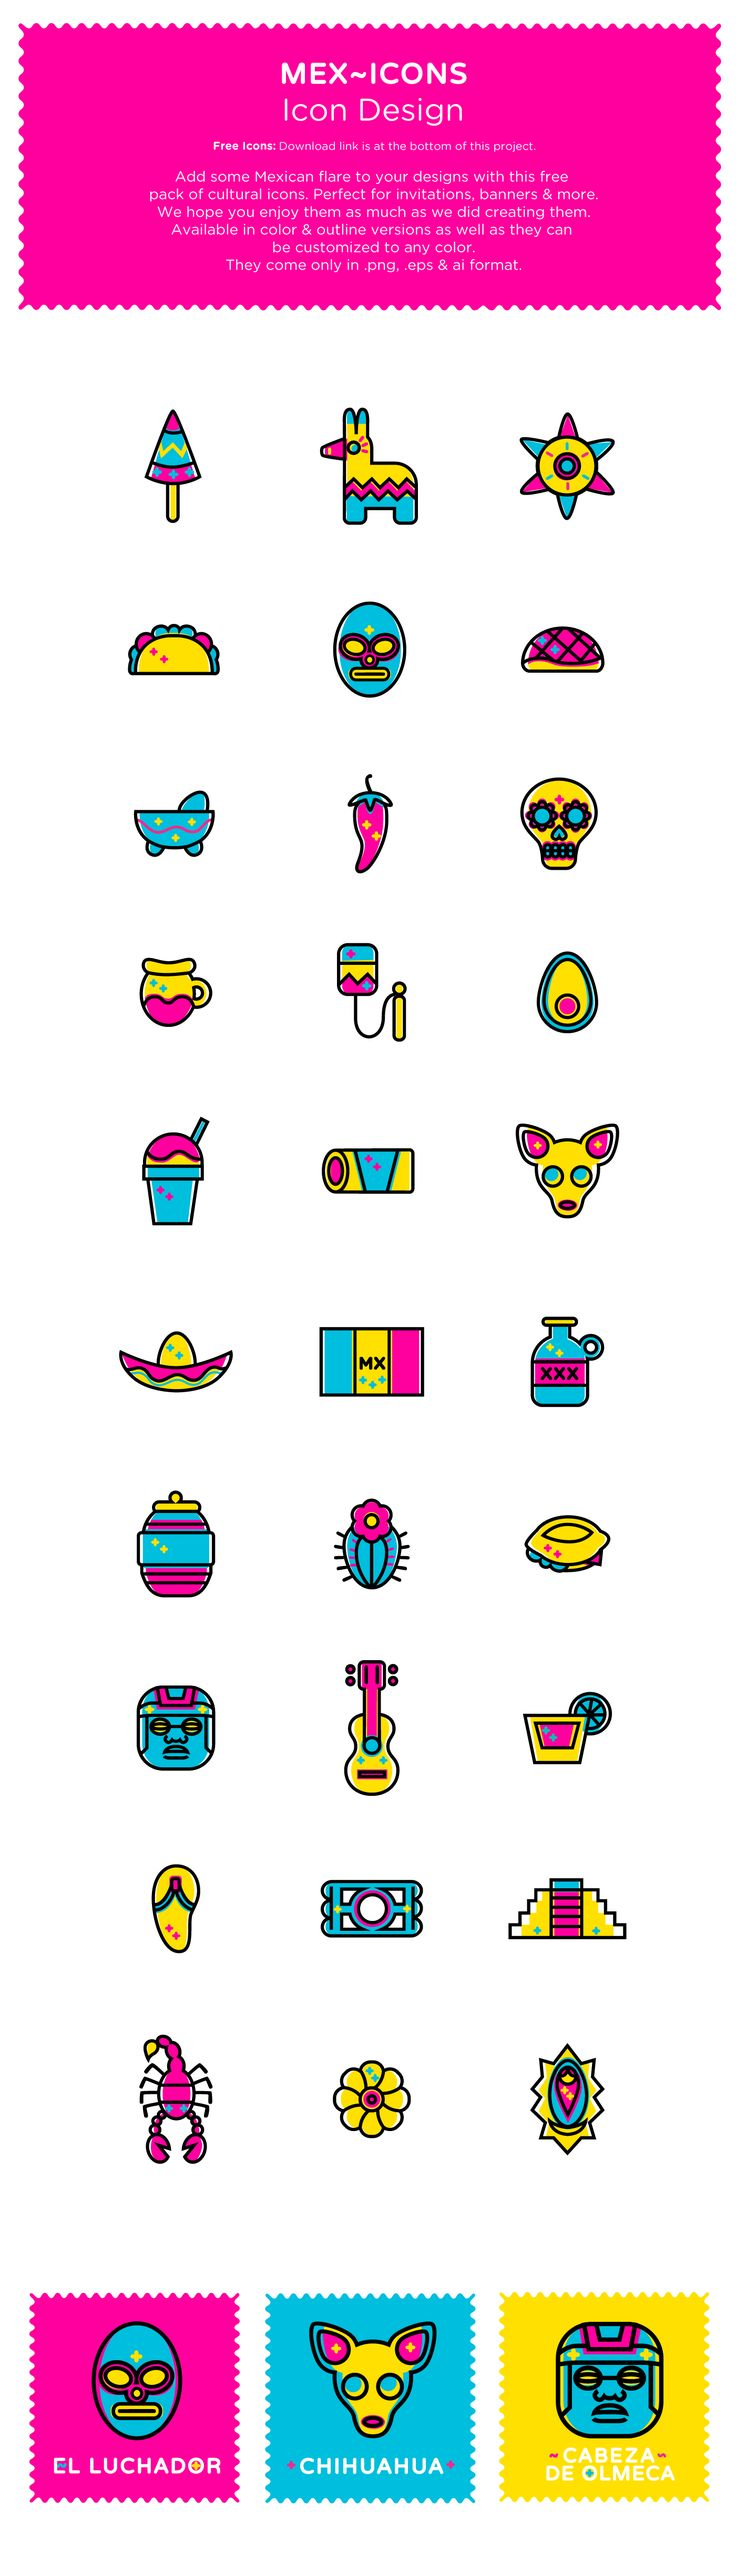 Mex~icons Icon Design on Behance